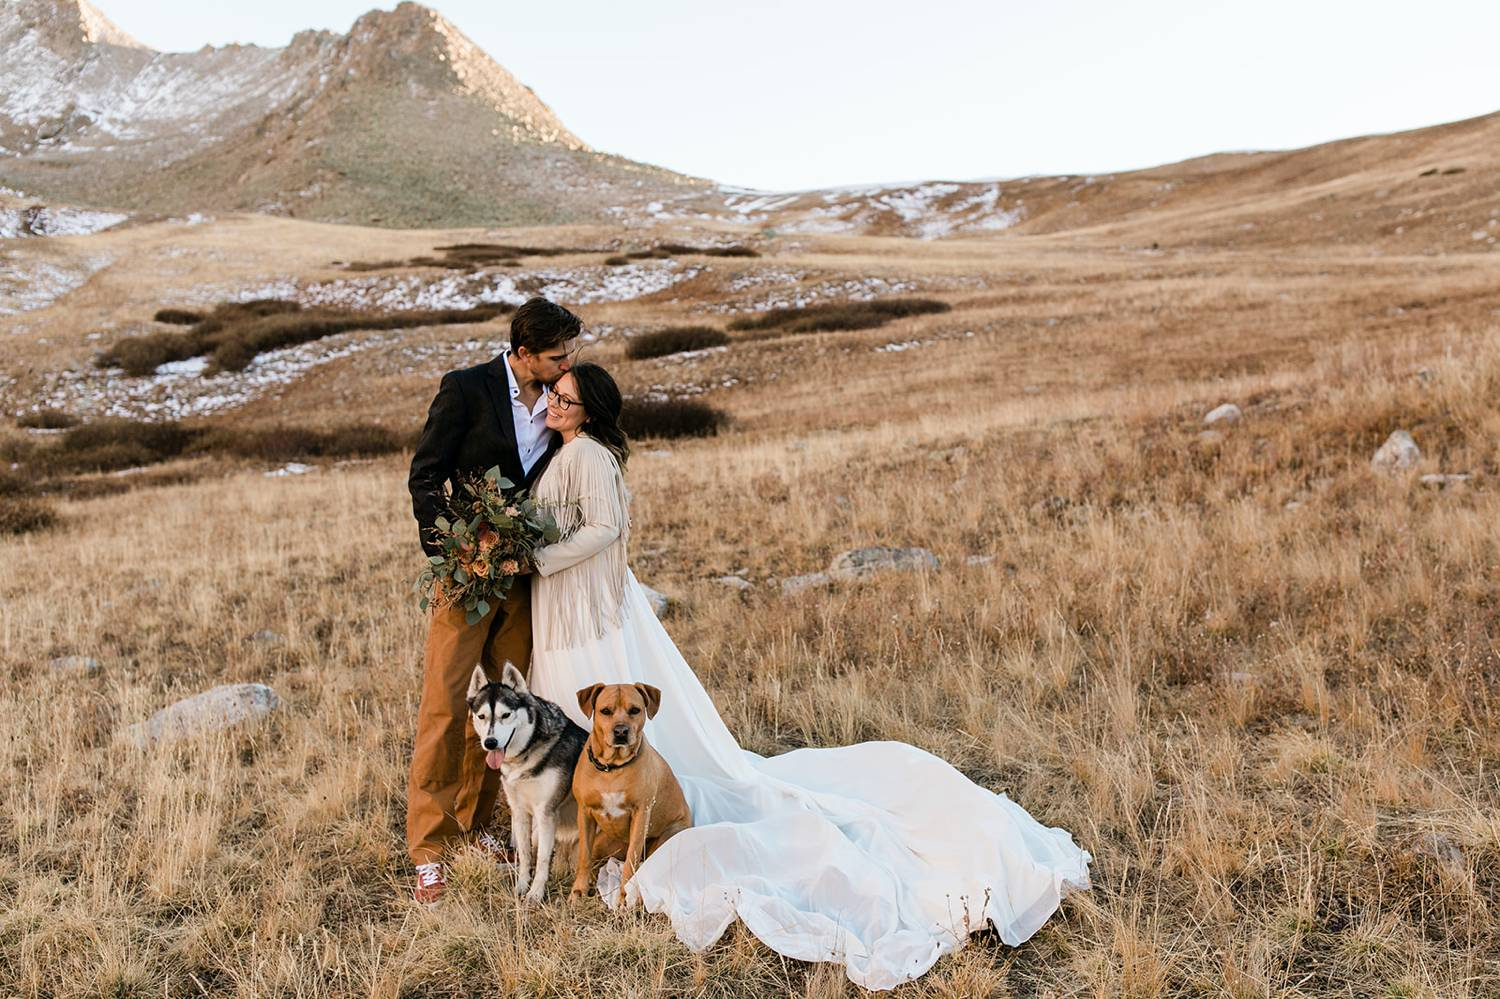 A bride and groom snuggle close in a wide overgrown field overlooking sun-soaked mountains as their two dogs rest at their feet.